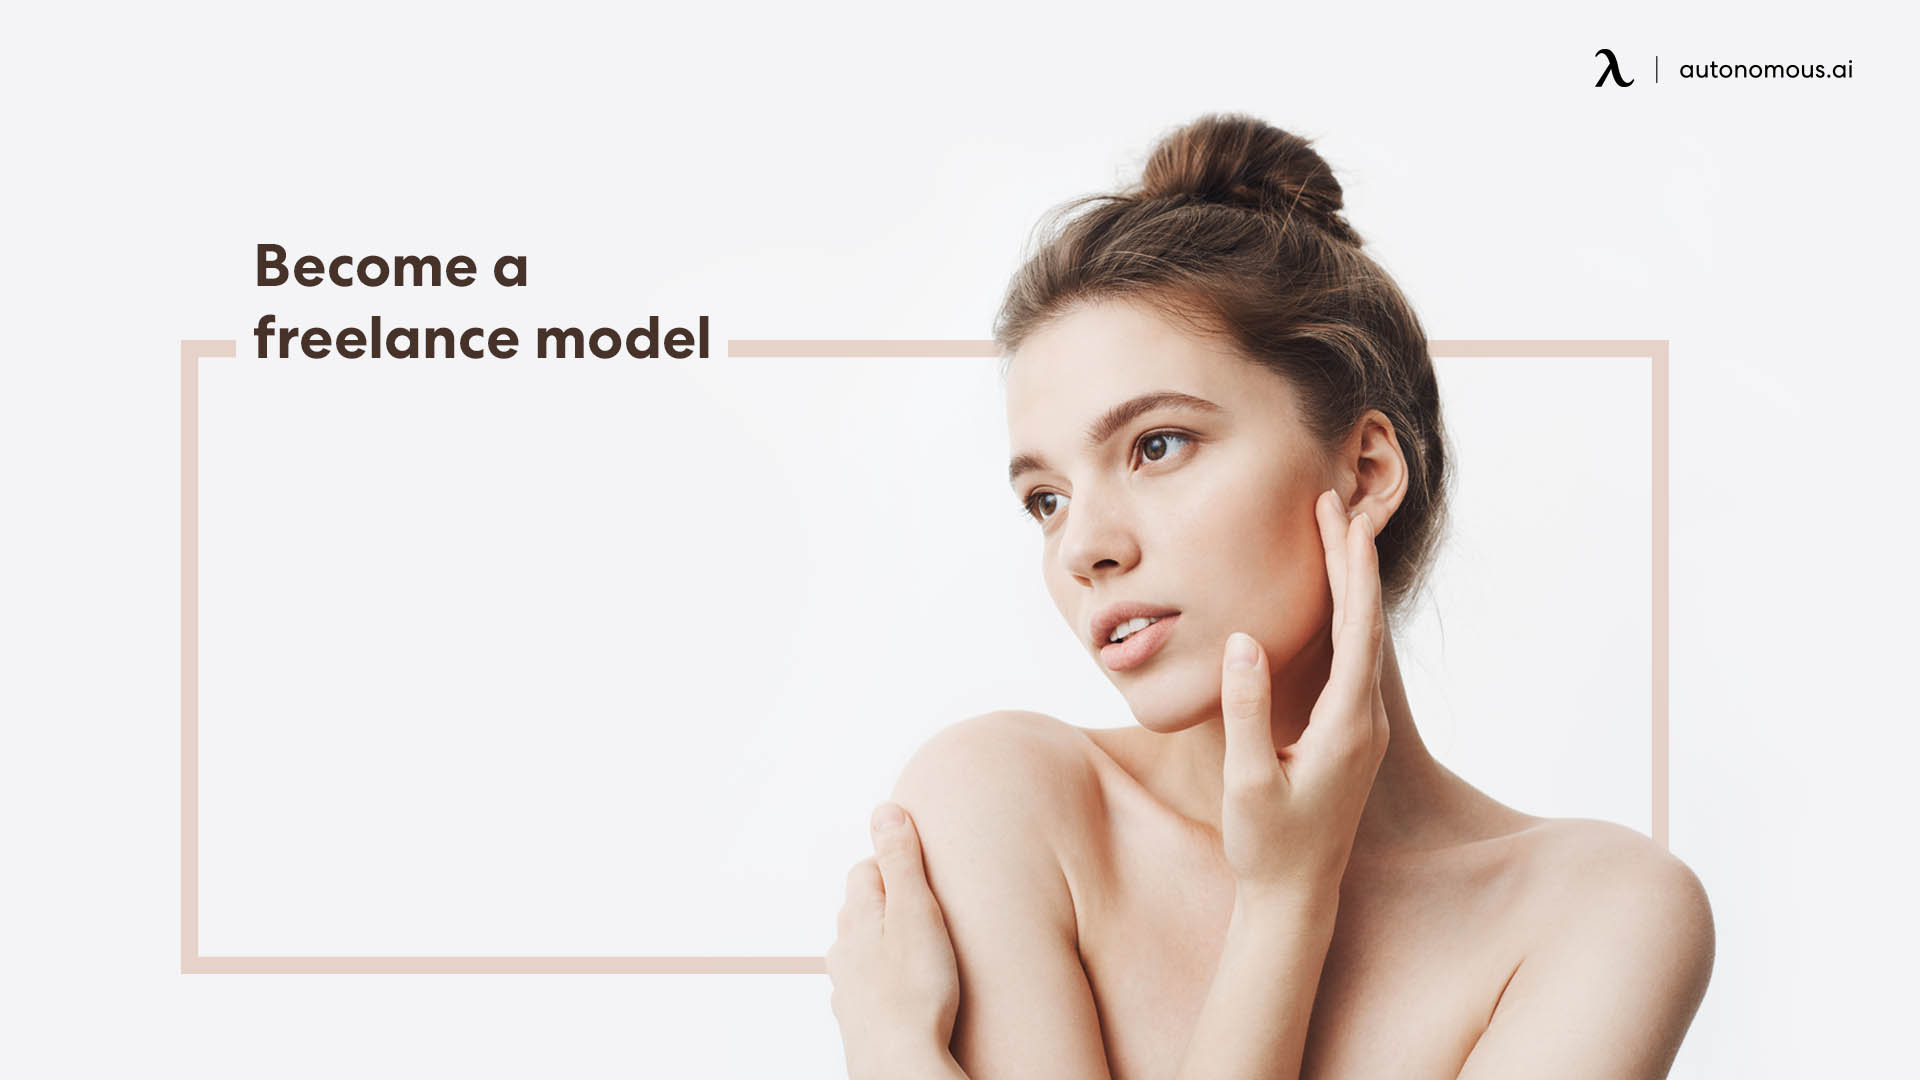 Become a freelance model